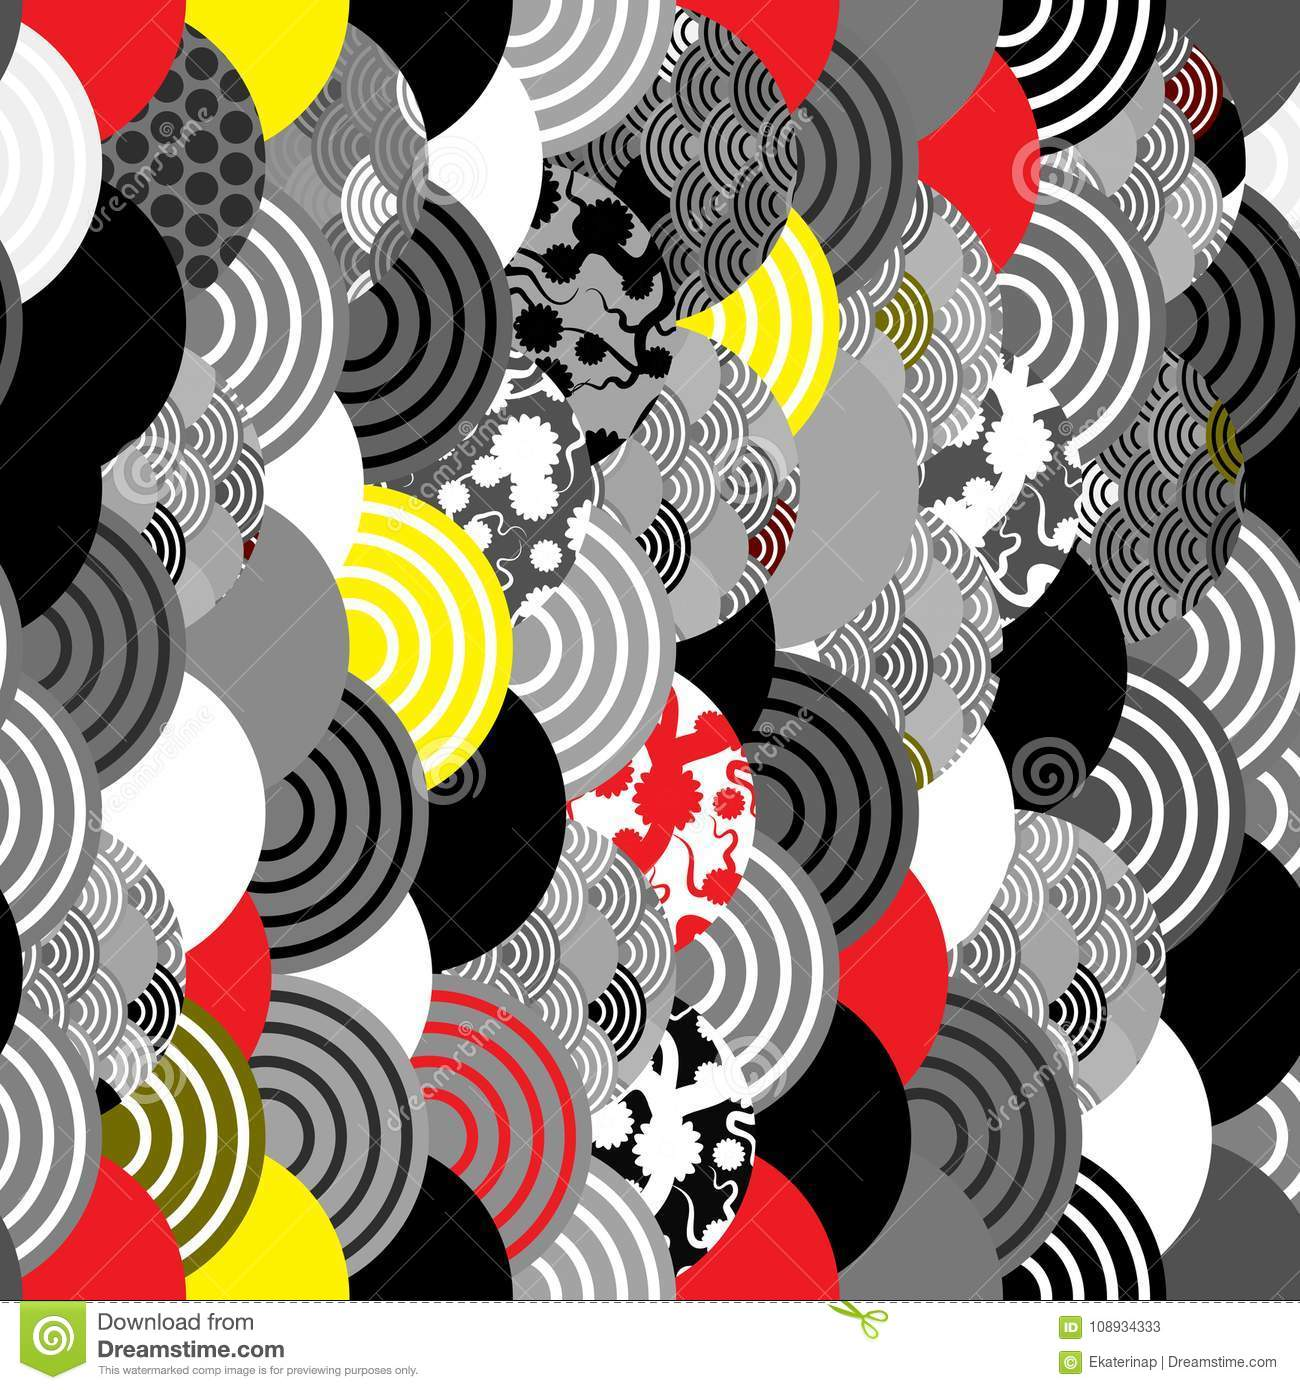 Seamless pattern fish scales simple Nature background with japanese sakura flower, Cherry, wave circle Black gray white Red Yellow